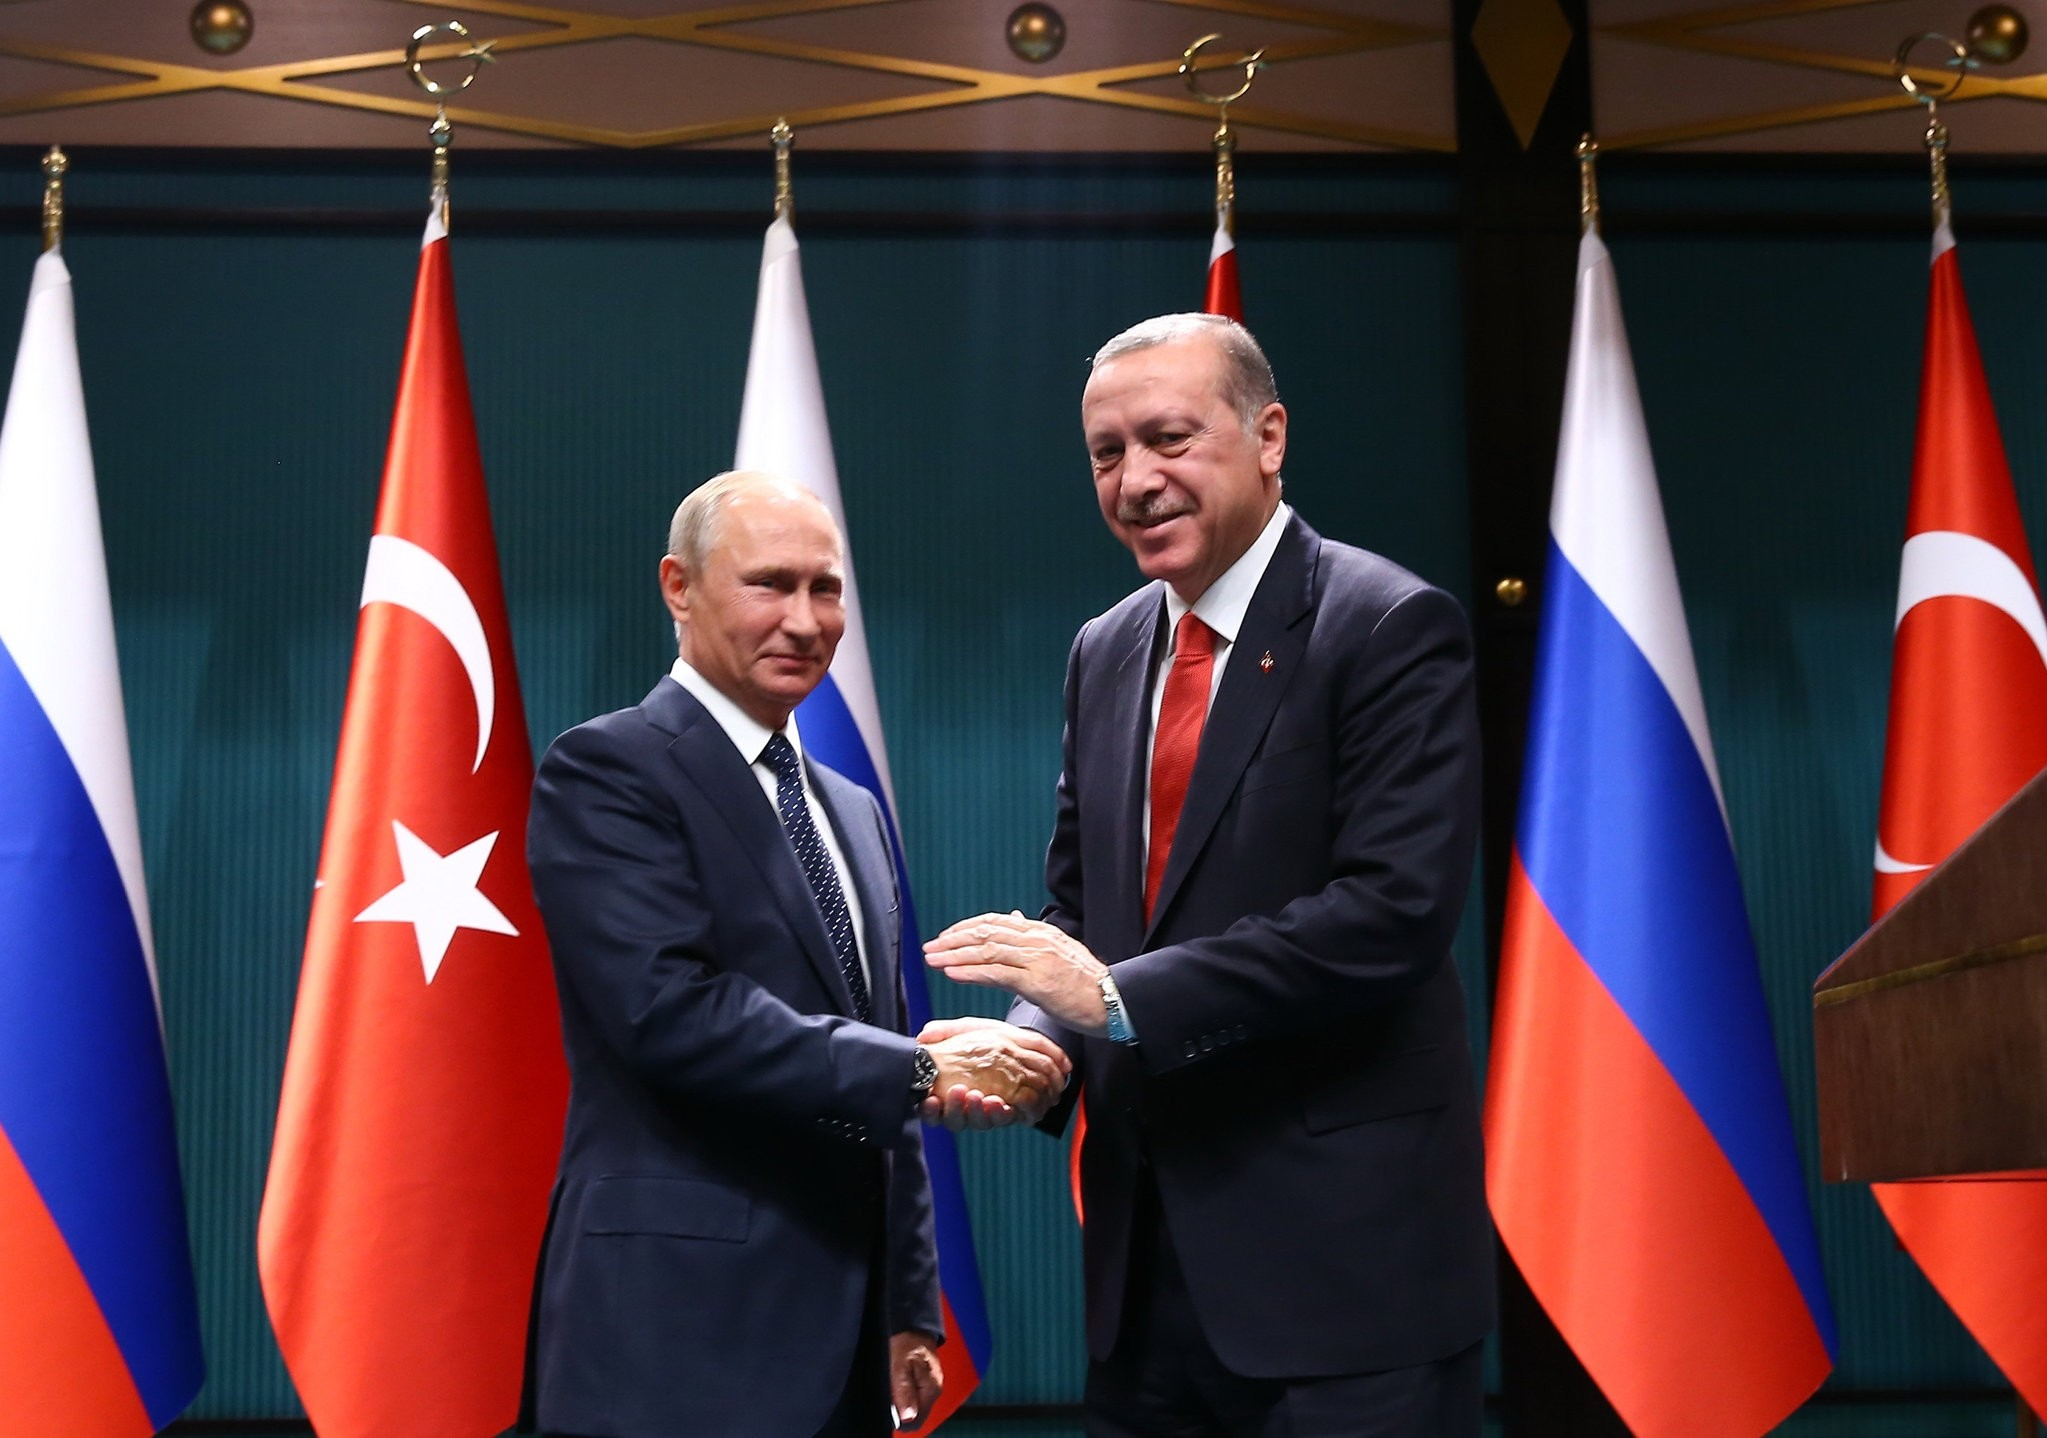 Putin (L) and Erdou011fan (R) shake hands after holding a joint press conference. (FILE Photo)